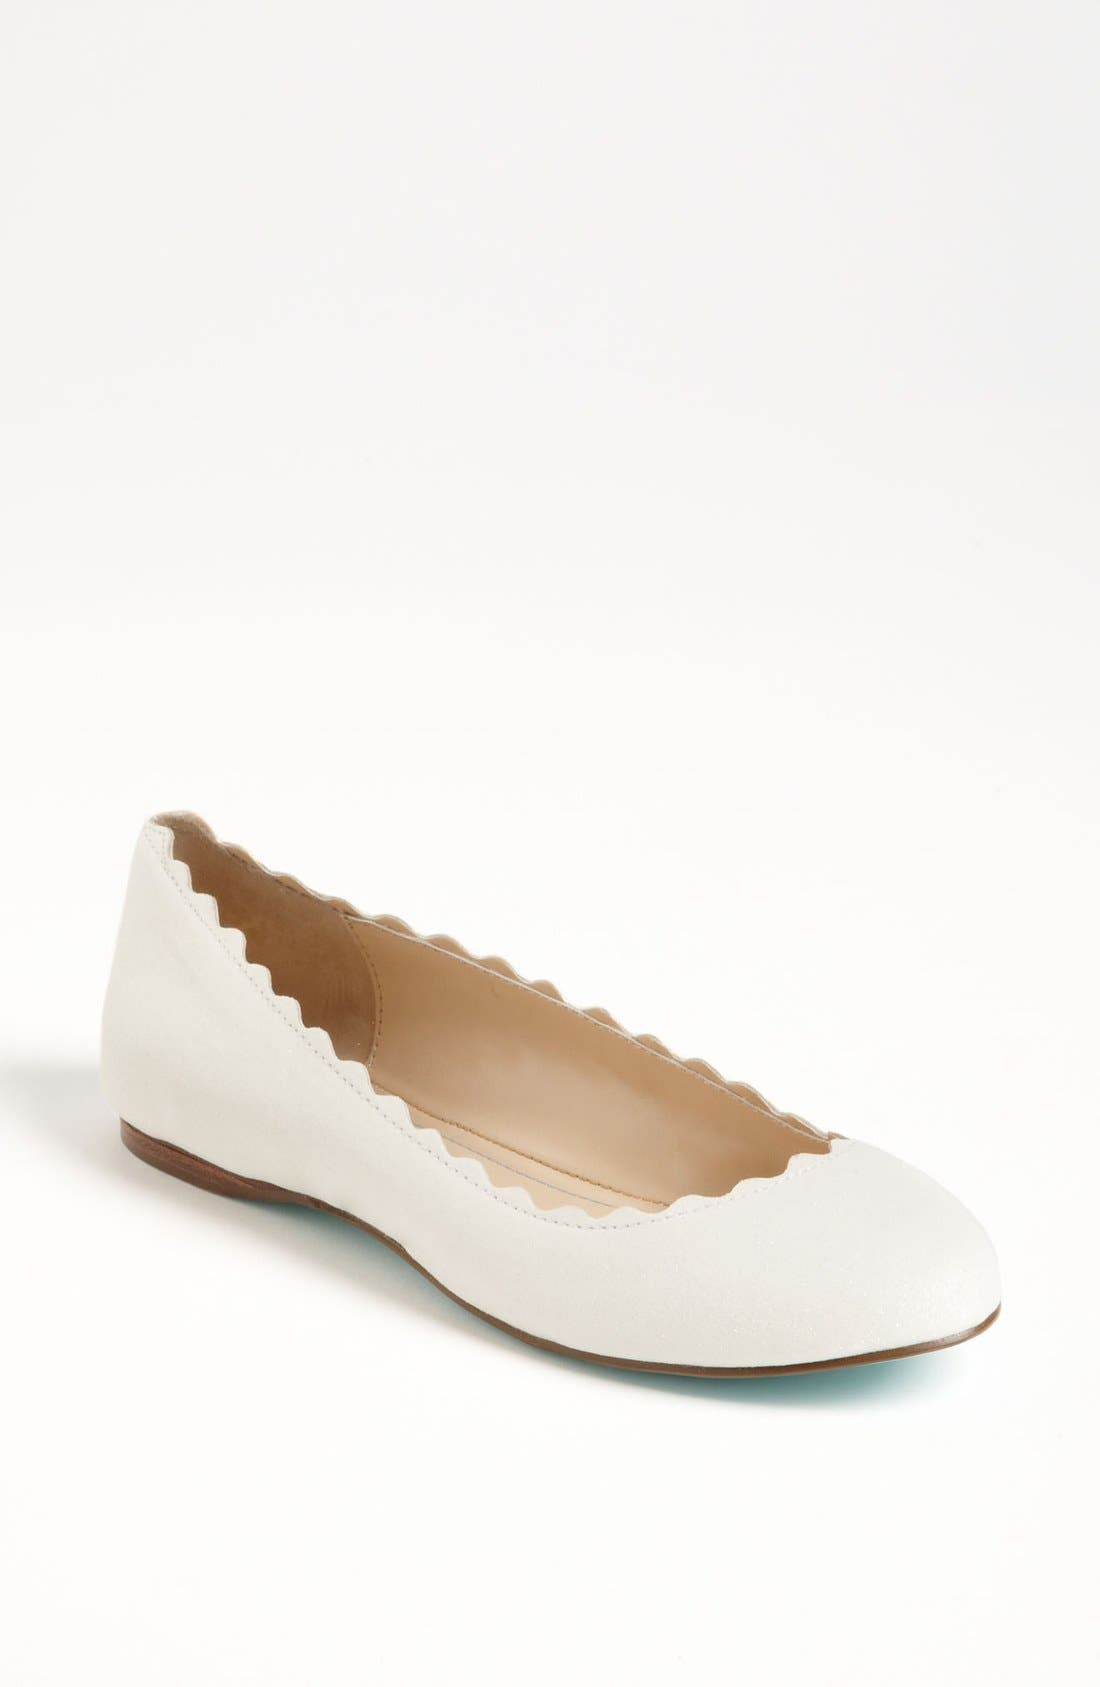 Alternate Image 1 Selected - Blue by Betsey Johnson 'Dance' Flat